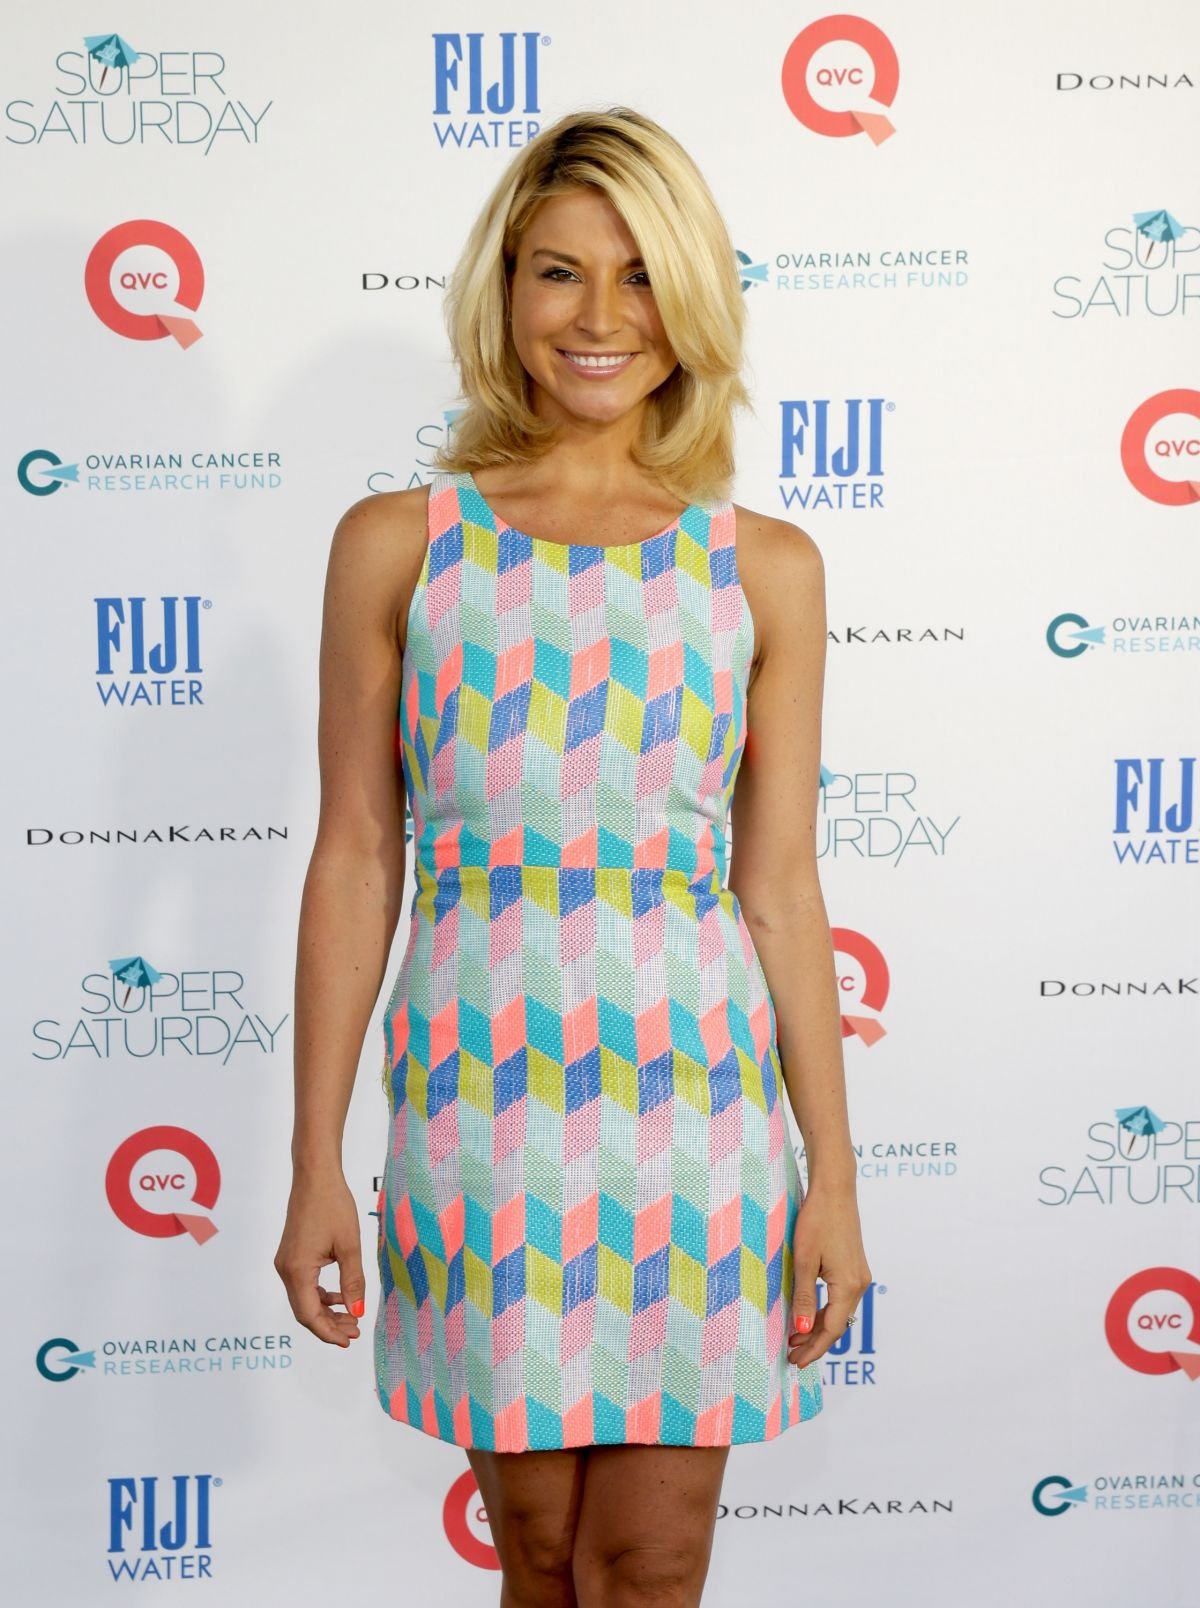 DIEM BROWN at OCRF' Super Saturday